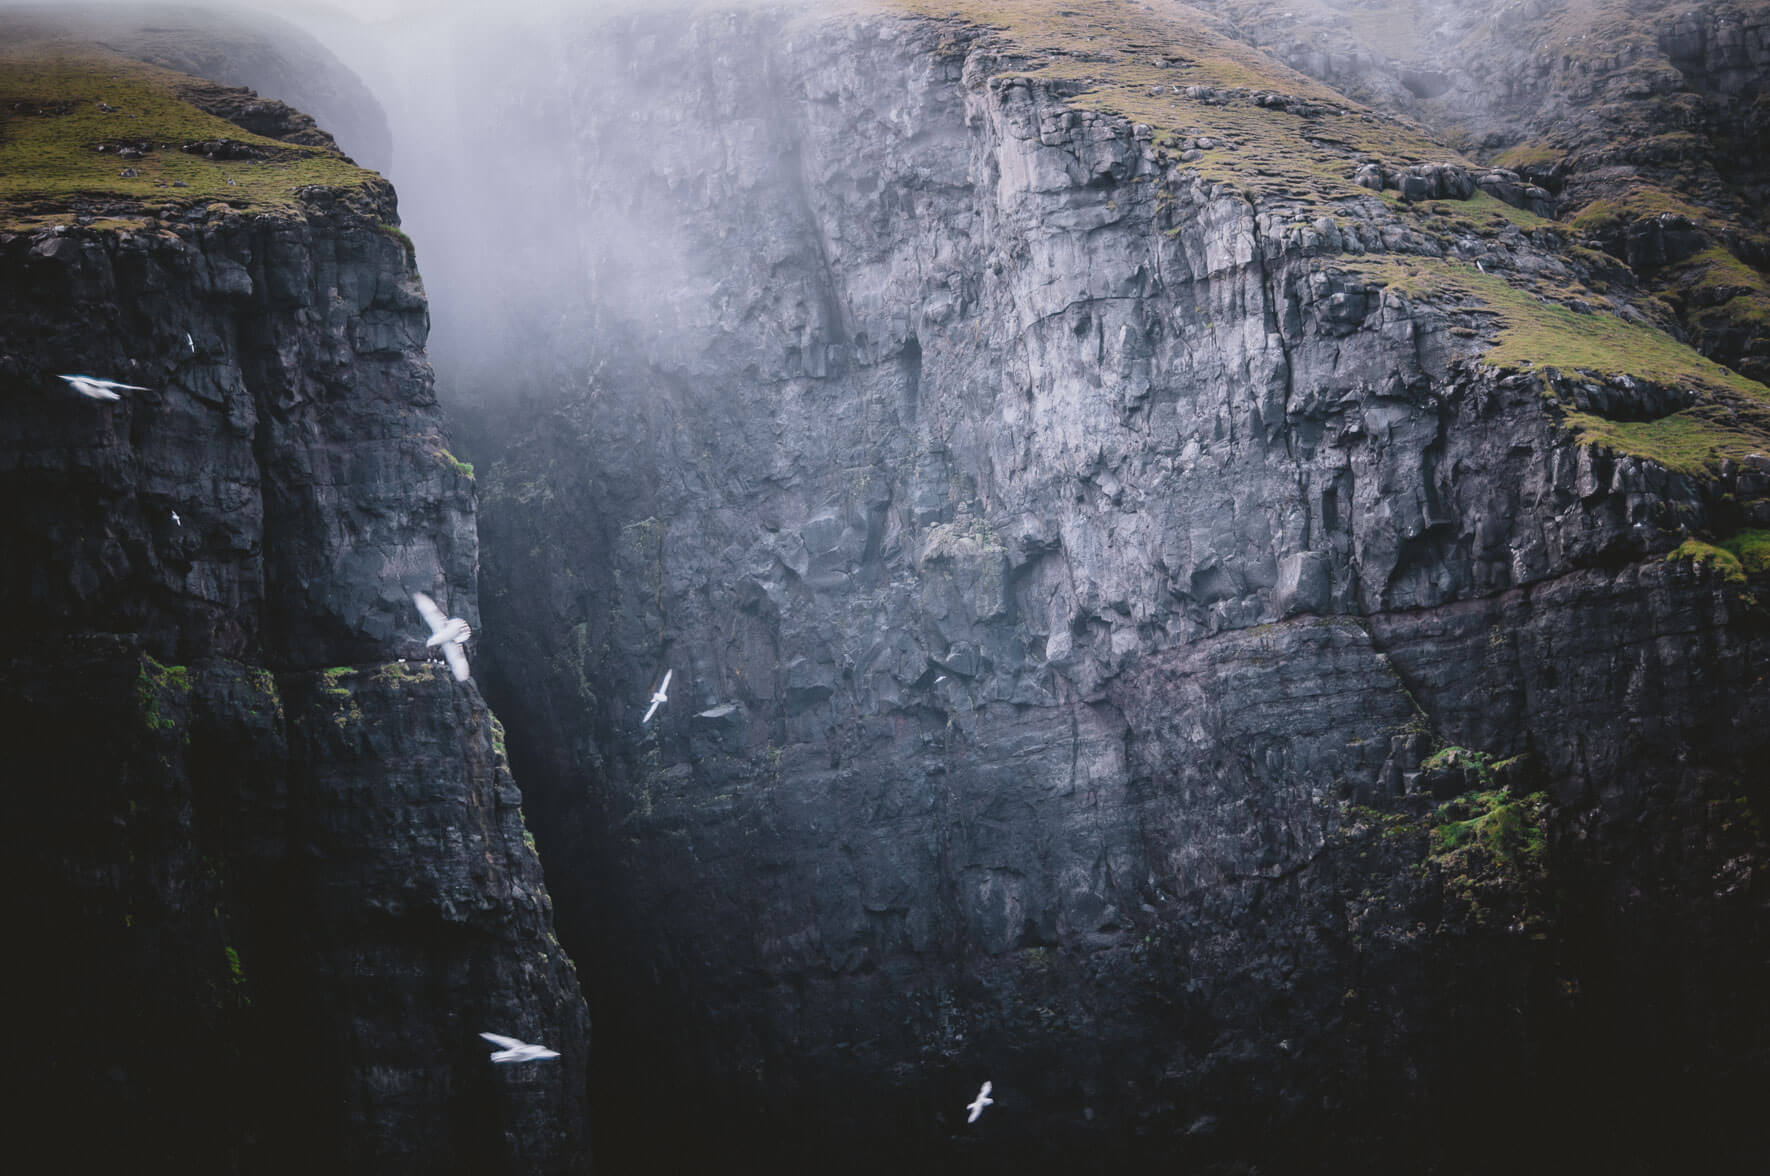 Bird cliffs of Suðuroy on the Faroe Islands